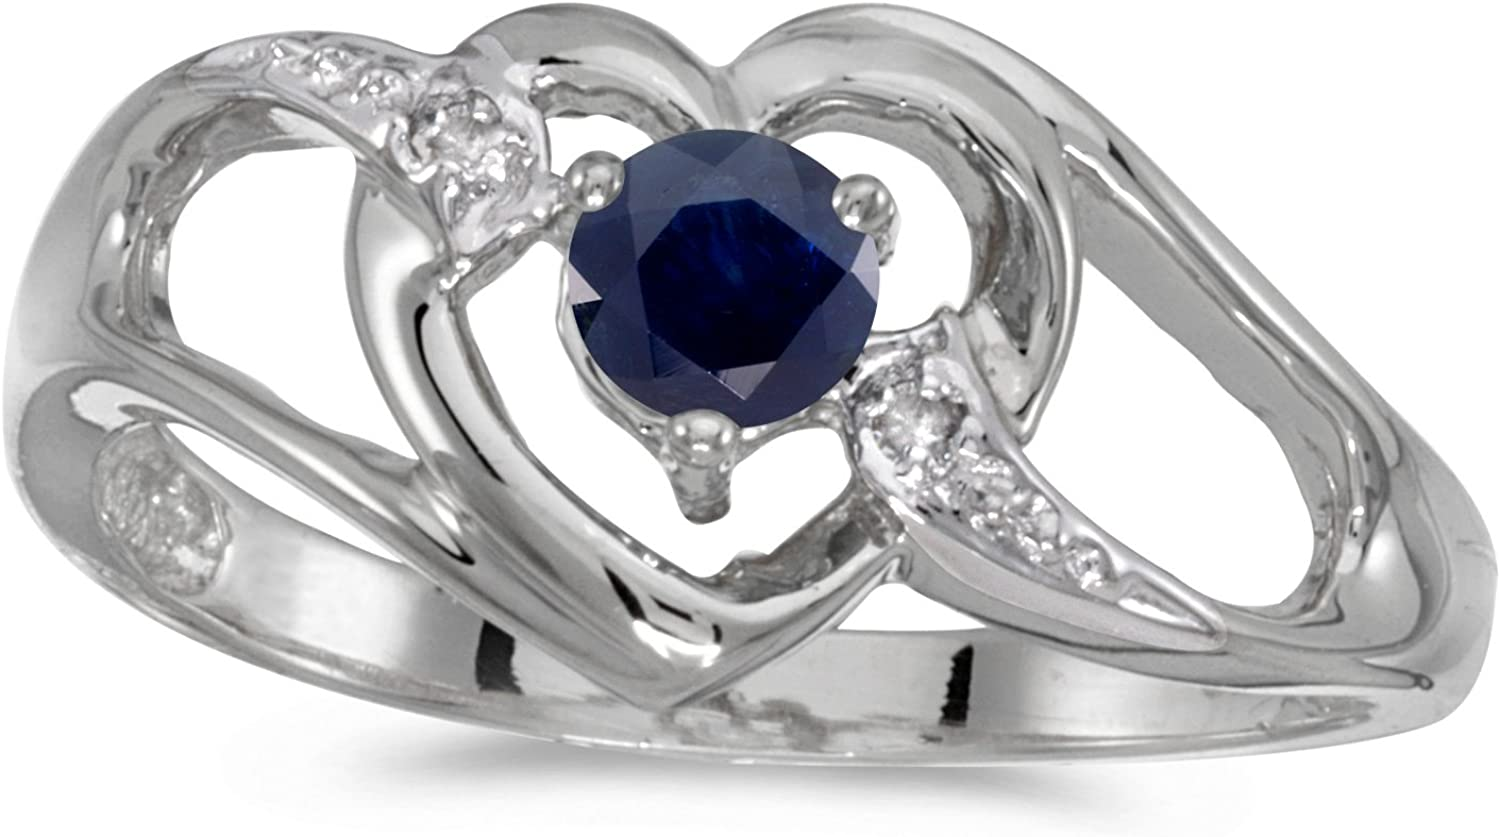 Jewels By Lux 14k White Gold Genuine Birthstone Solitaire Round Gemstone And Diamond Heart Wedding Engagement Ring